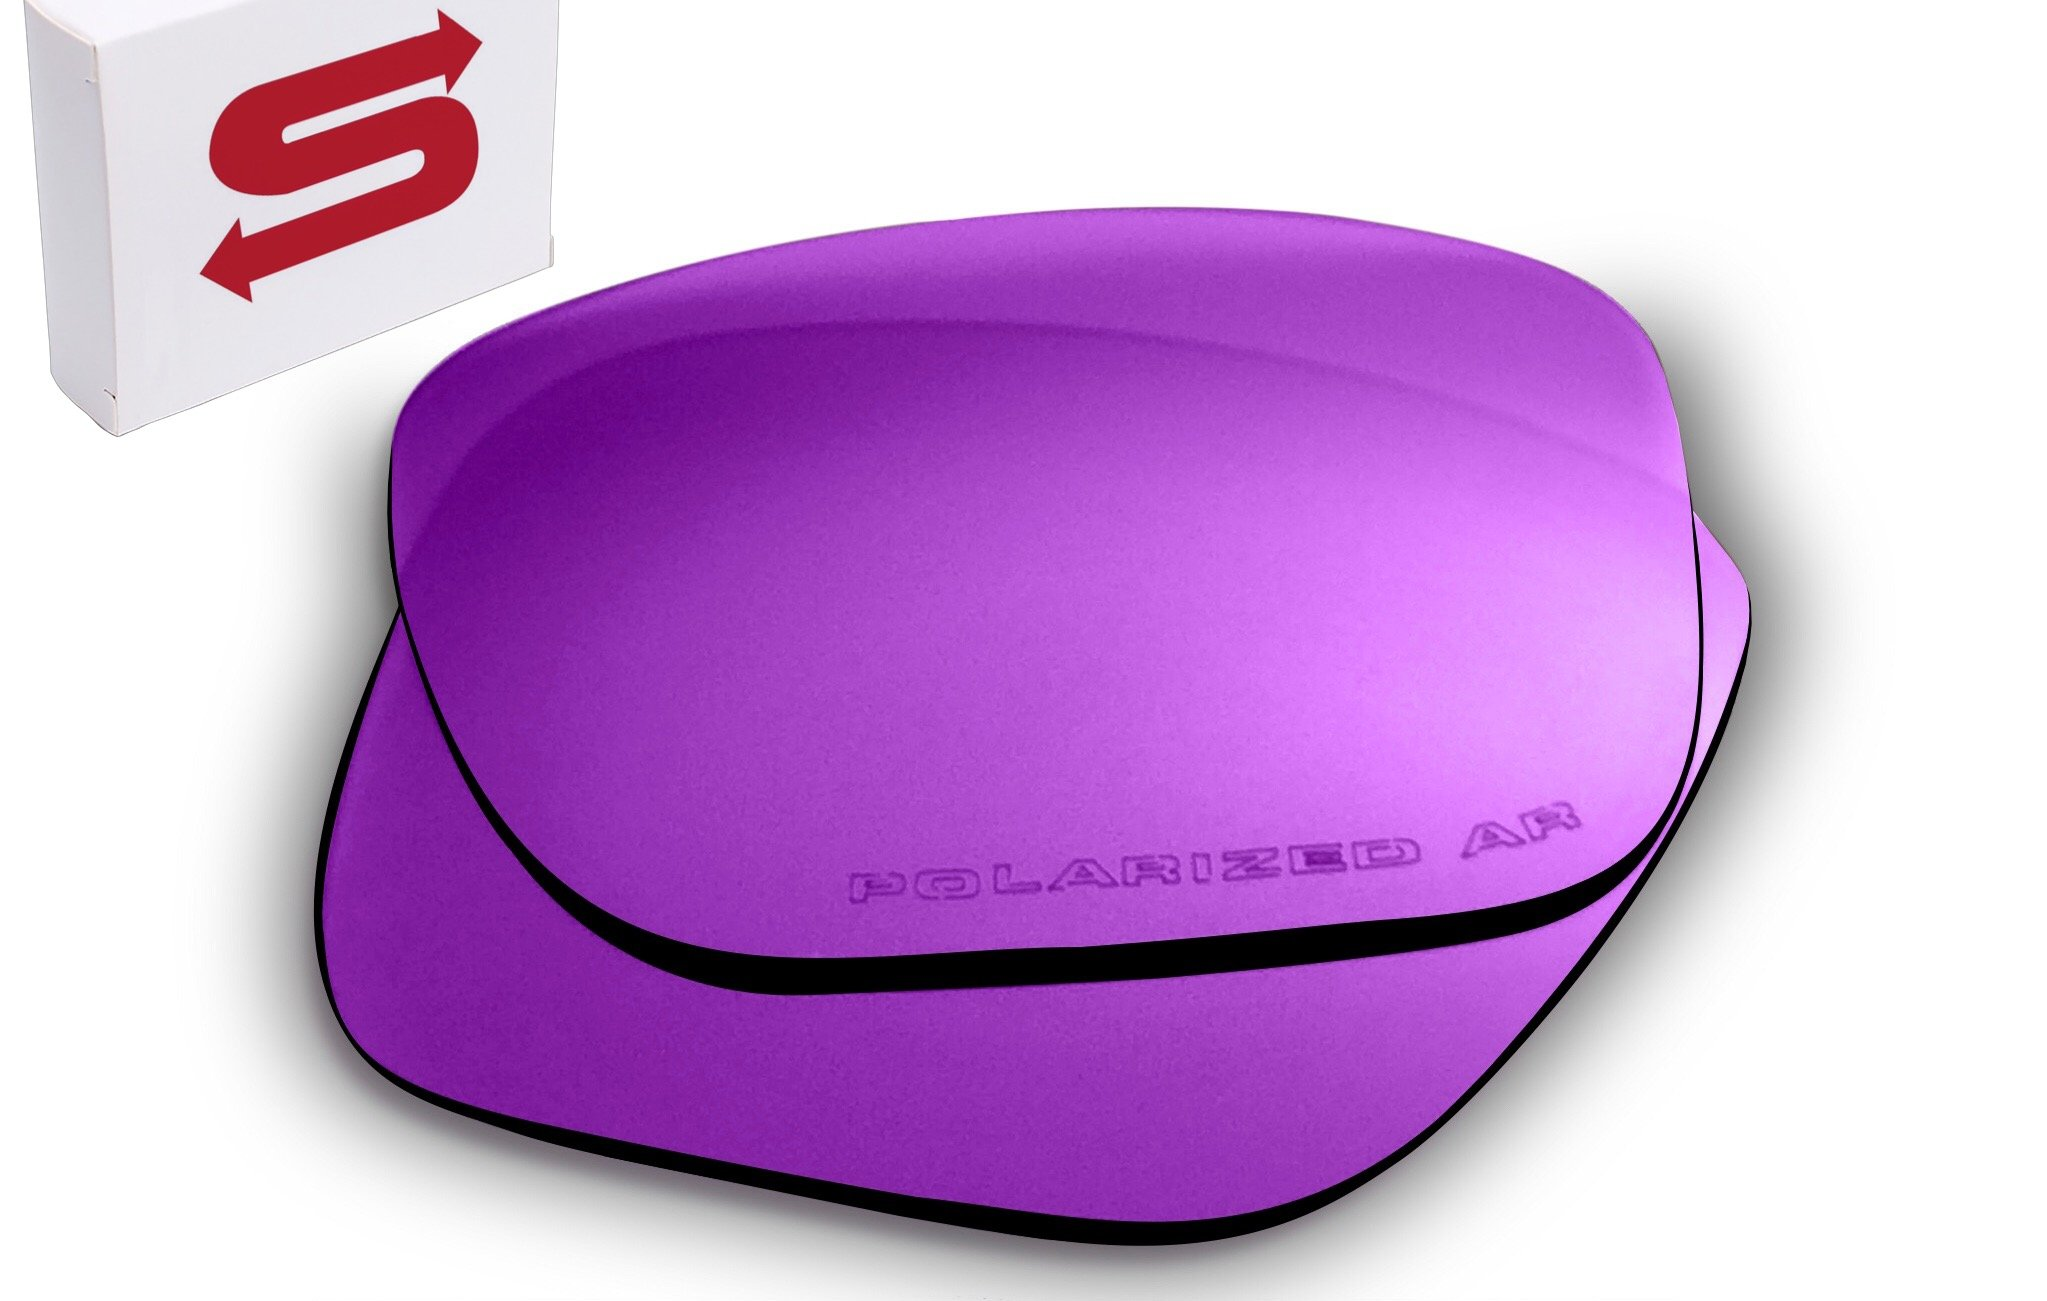 PURPLE Oakley Holbrook Lenses POLARIZED by Lens Swap. GREAT QUALITY & FITS PERFECTLY. Oakley Holbrook Replacement Lenses.